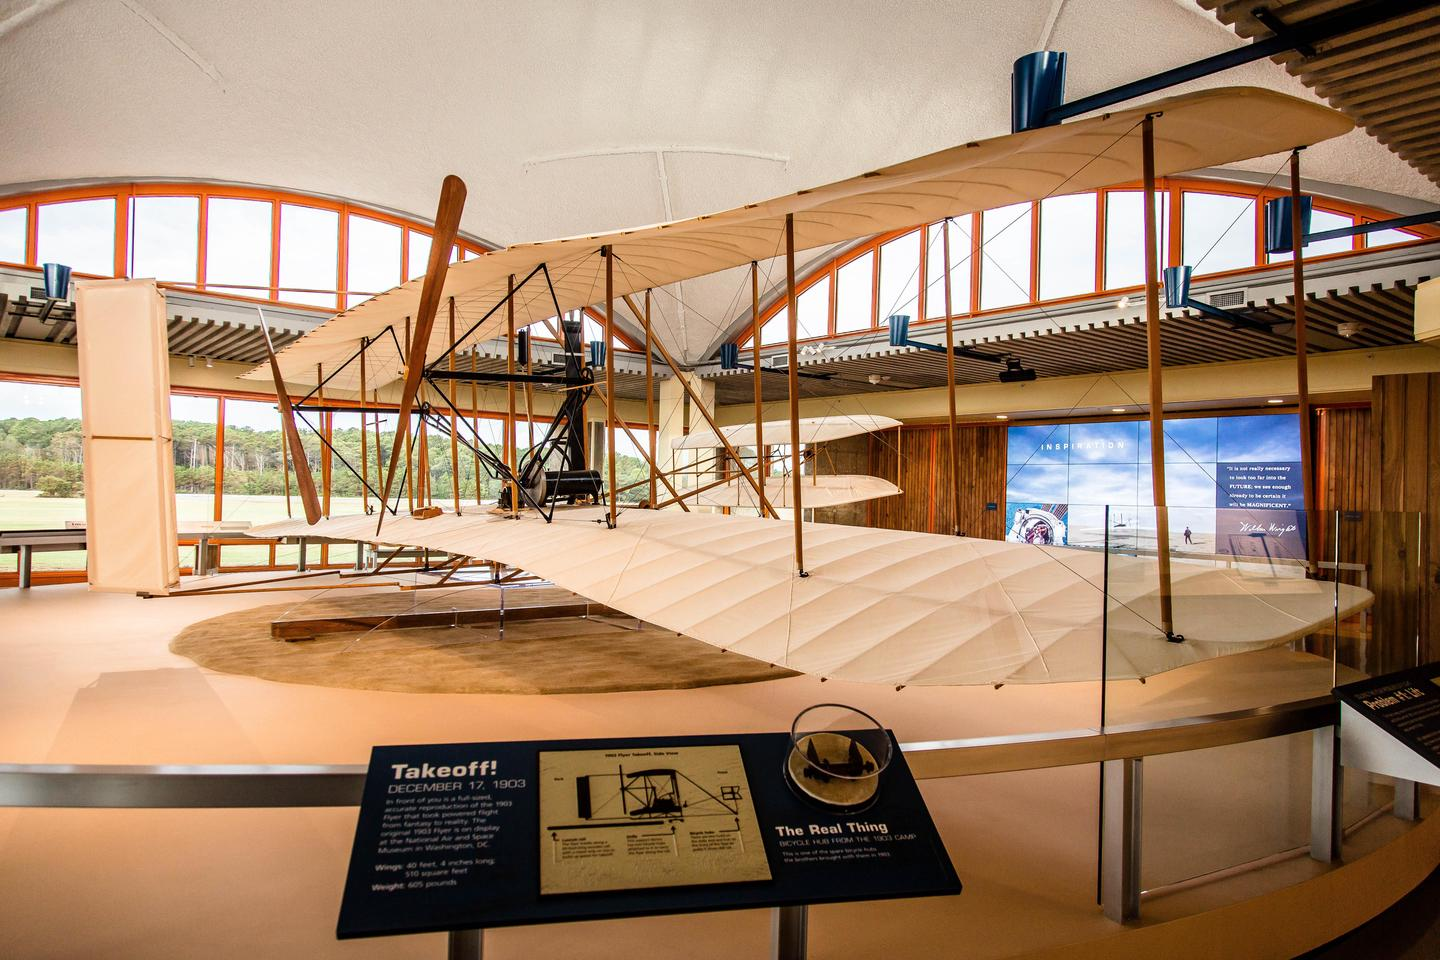 flight roomA replica of the 1903 flyer is on display in the Flight Room, helping bring this amazing moment to life.